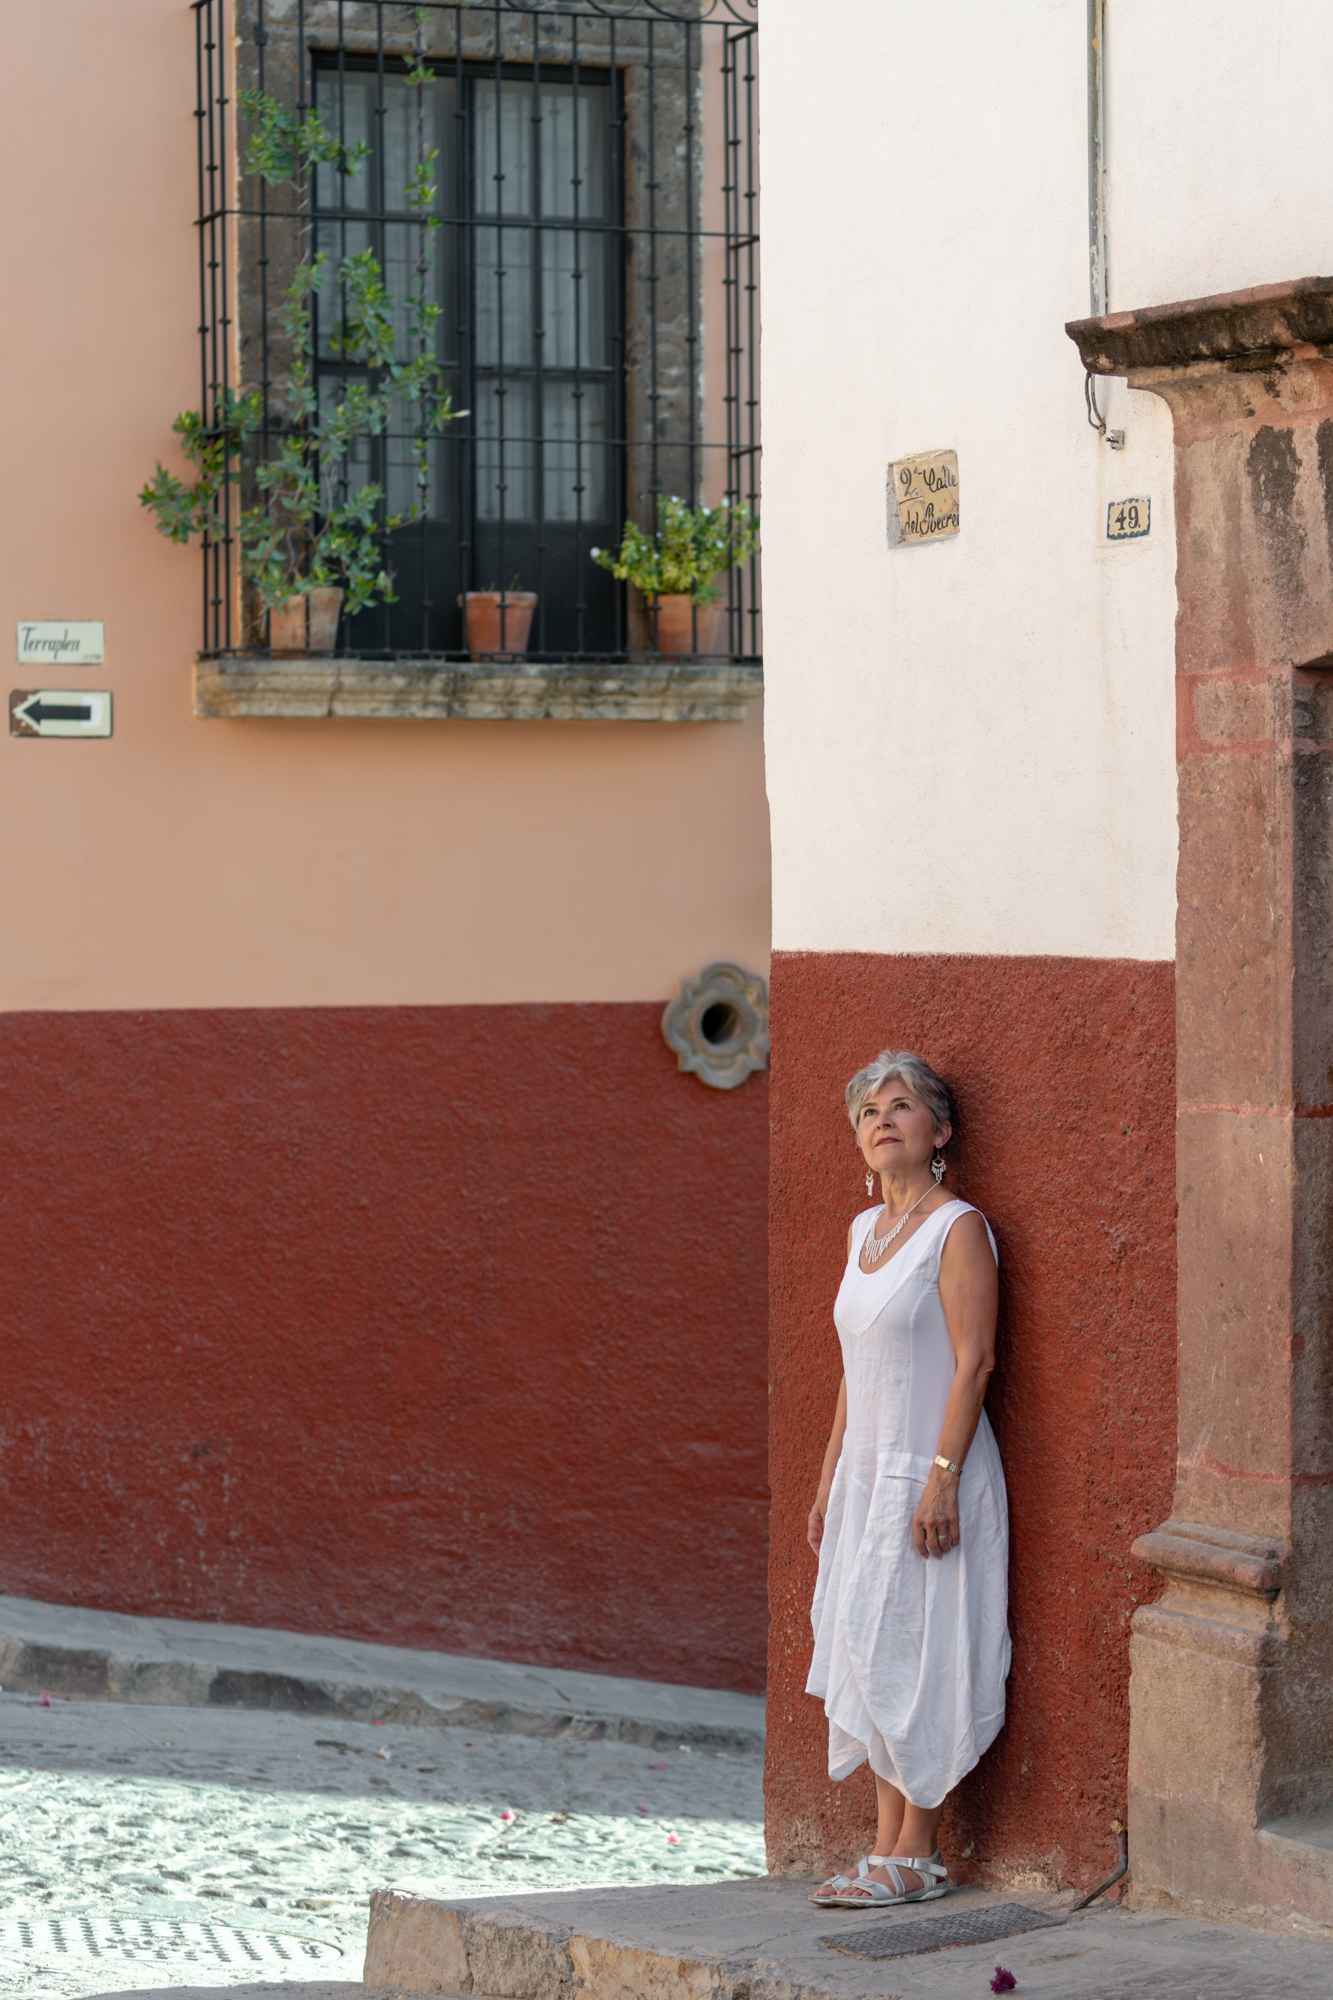 Photoshoot session in San Miguel de Allende with Suzanne and Leo-29.jpg